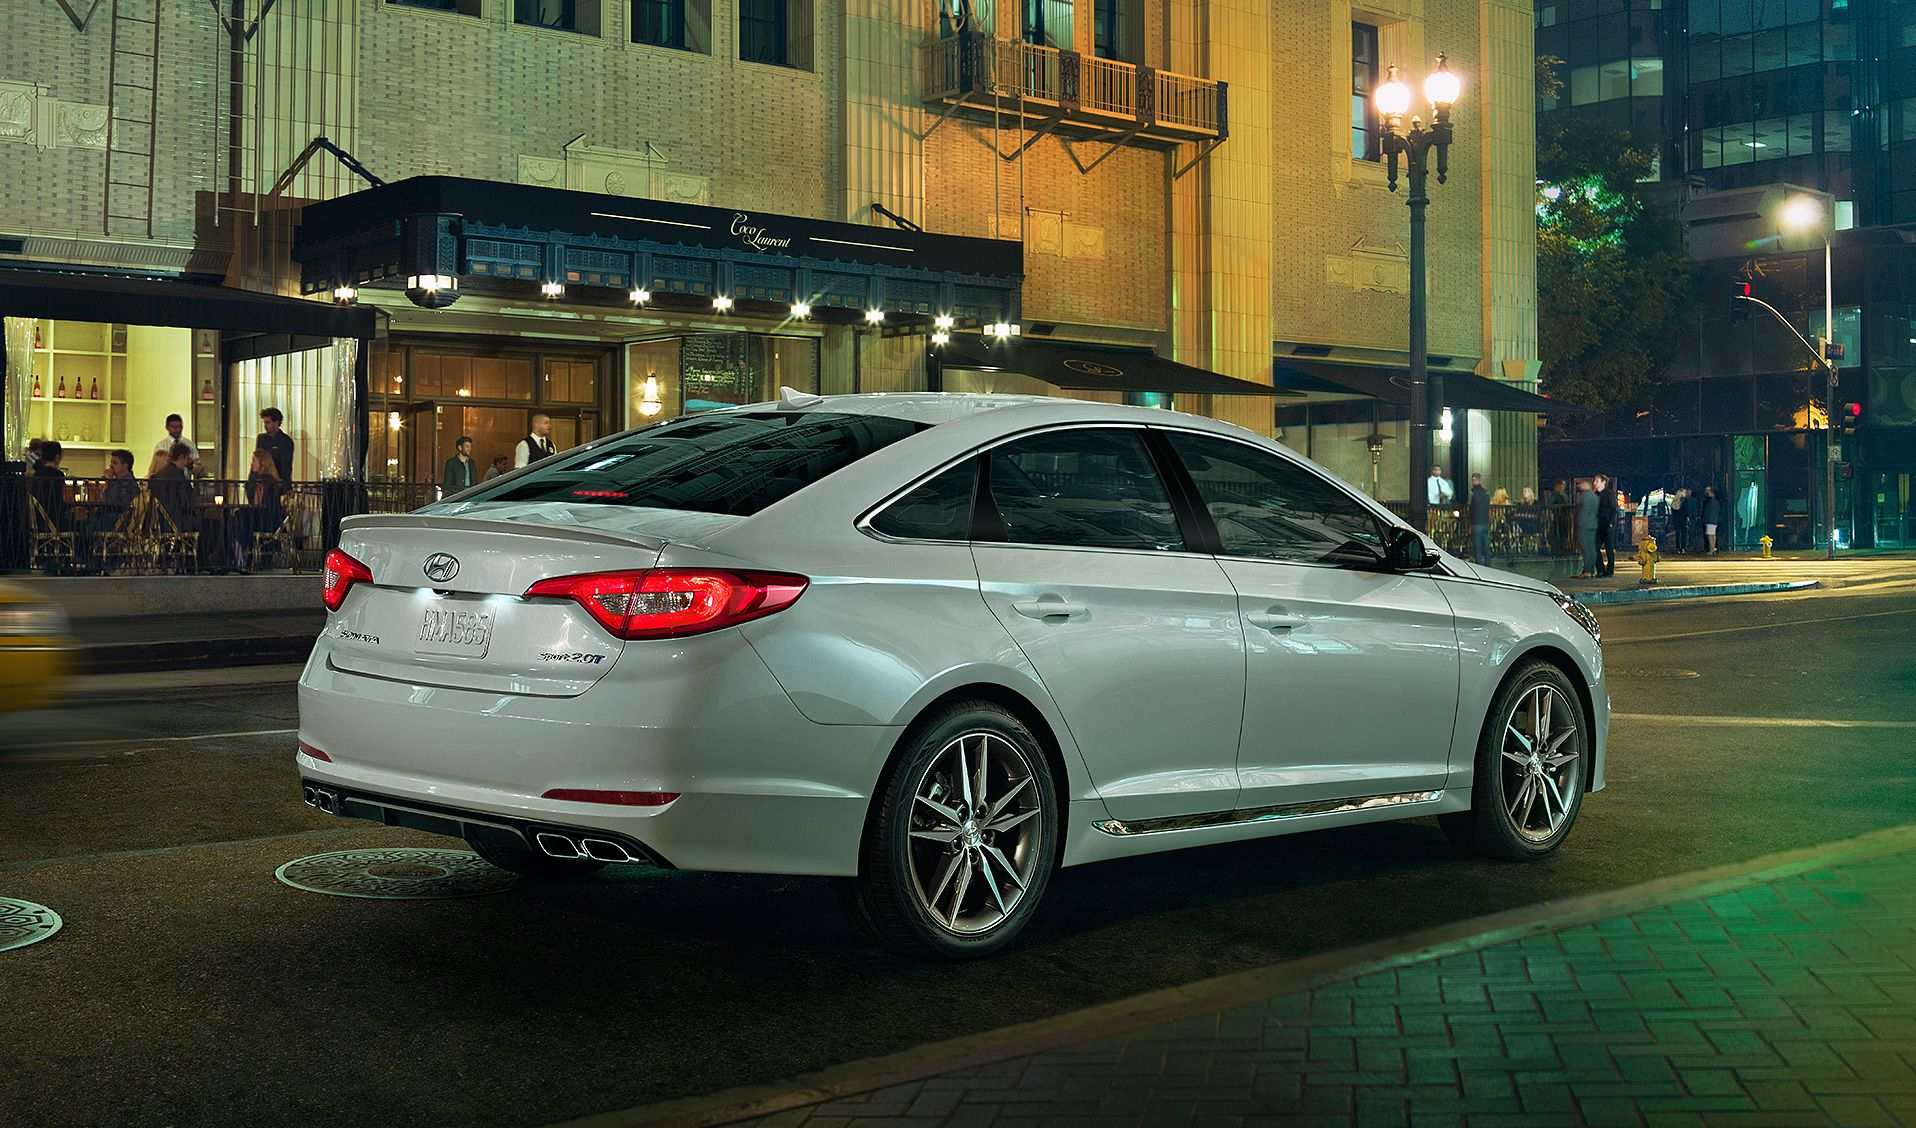 Exciting Exterior of the Sonata